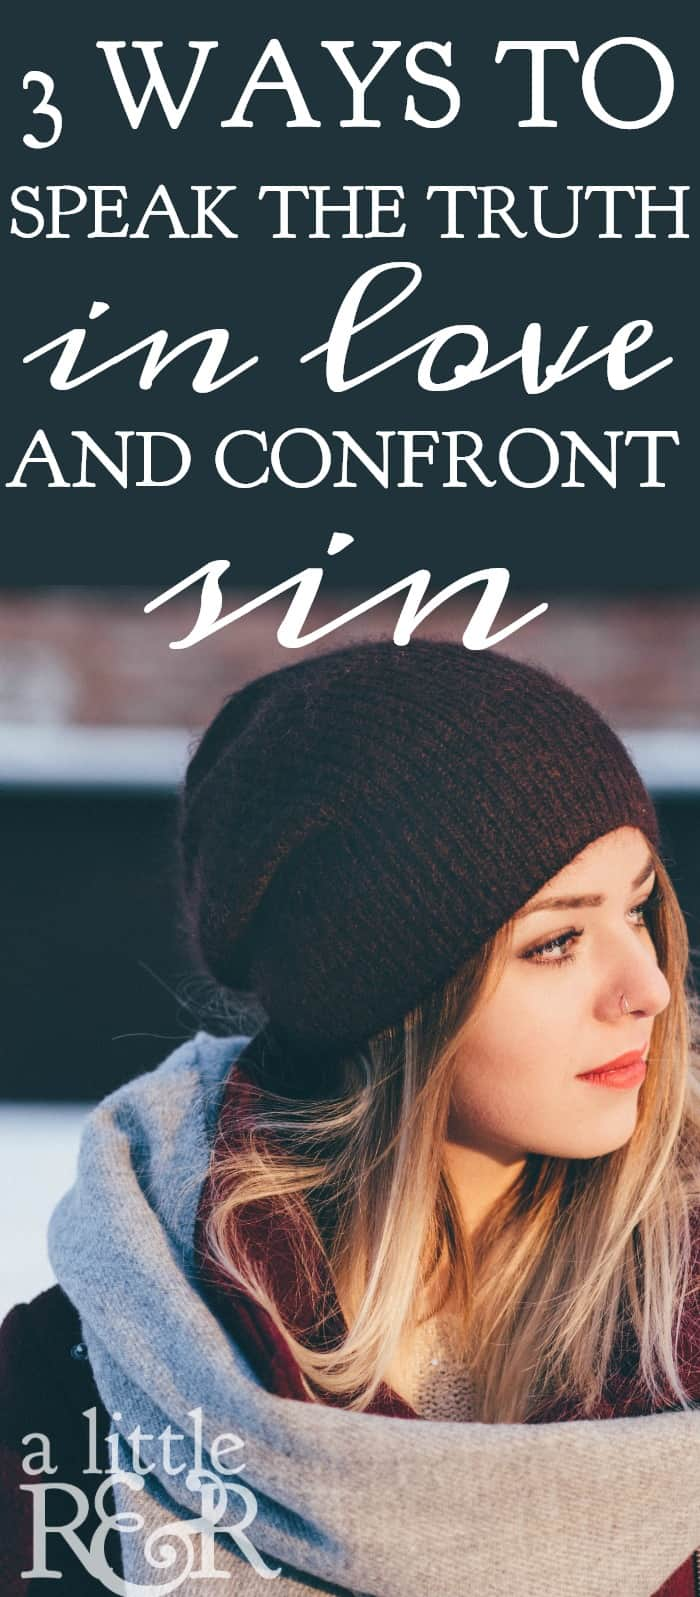 Here are 3 ways you can speak the truth in love an confront sin.